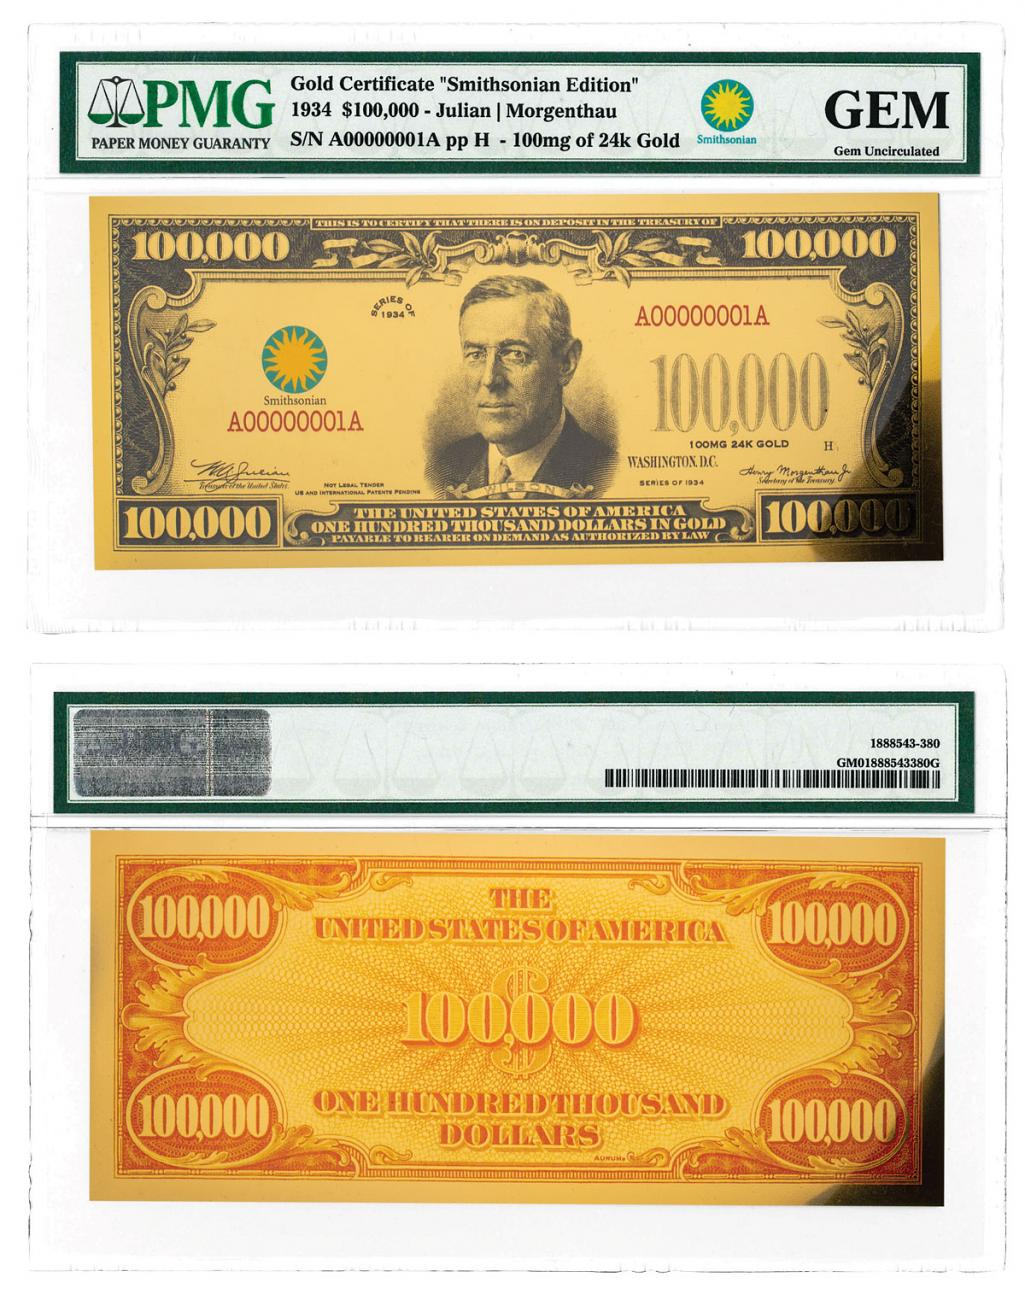 (2017) $100,000 Gold Certificate - Smithsonian Edition 1934 (Smithsonian Specimen) PMG GEM Uncirculated